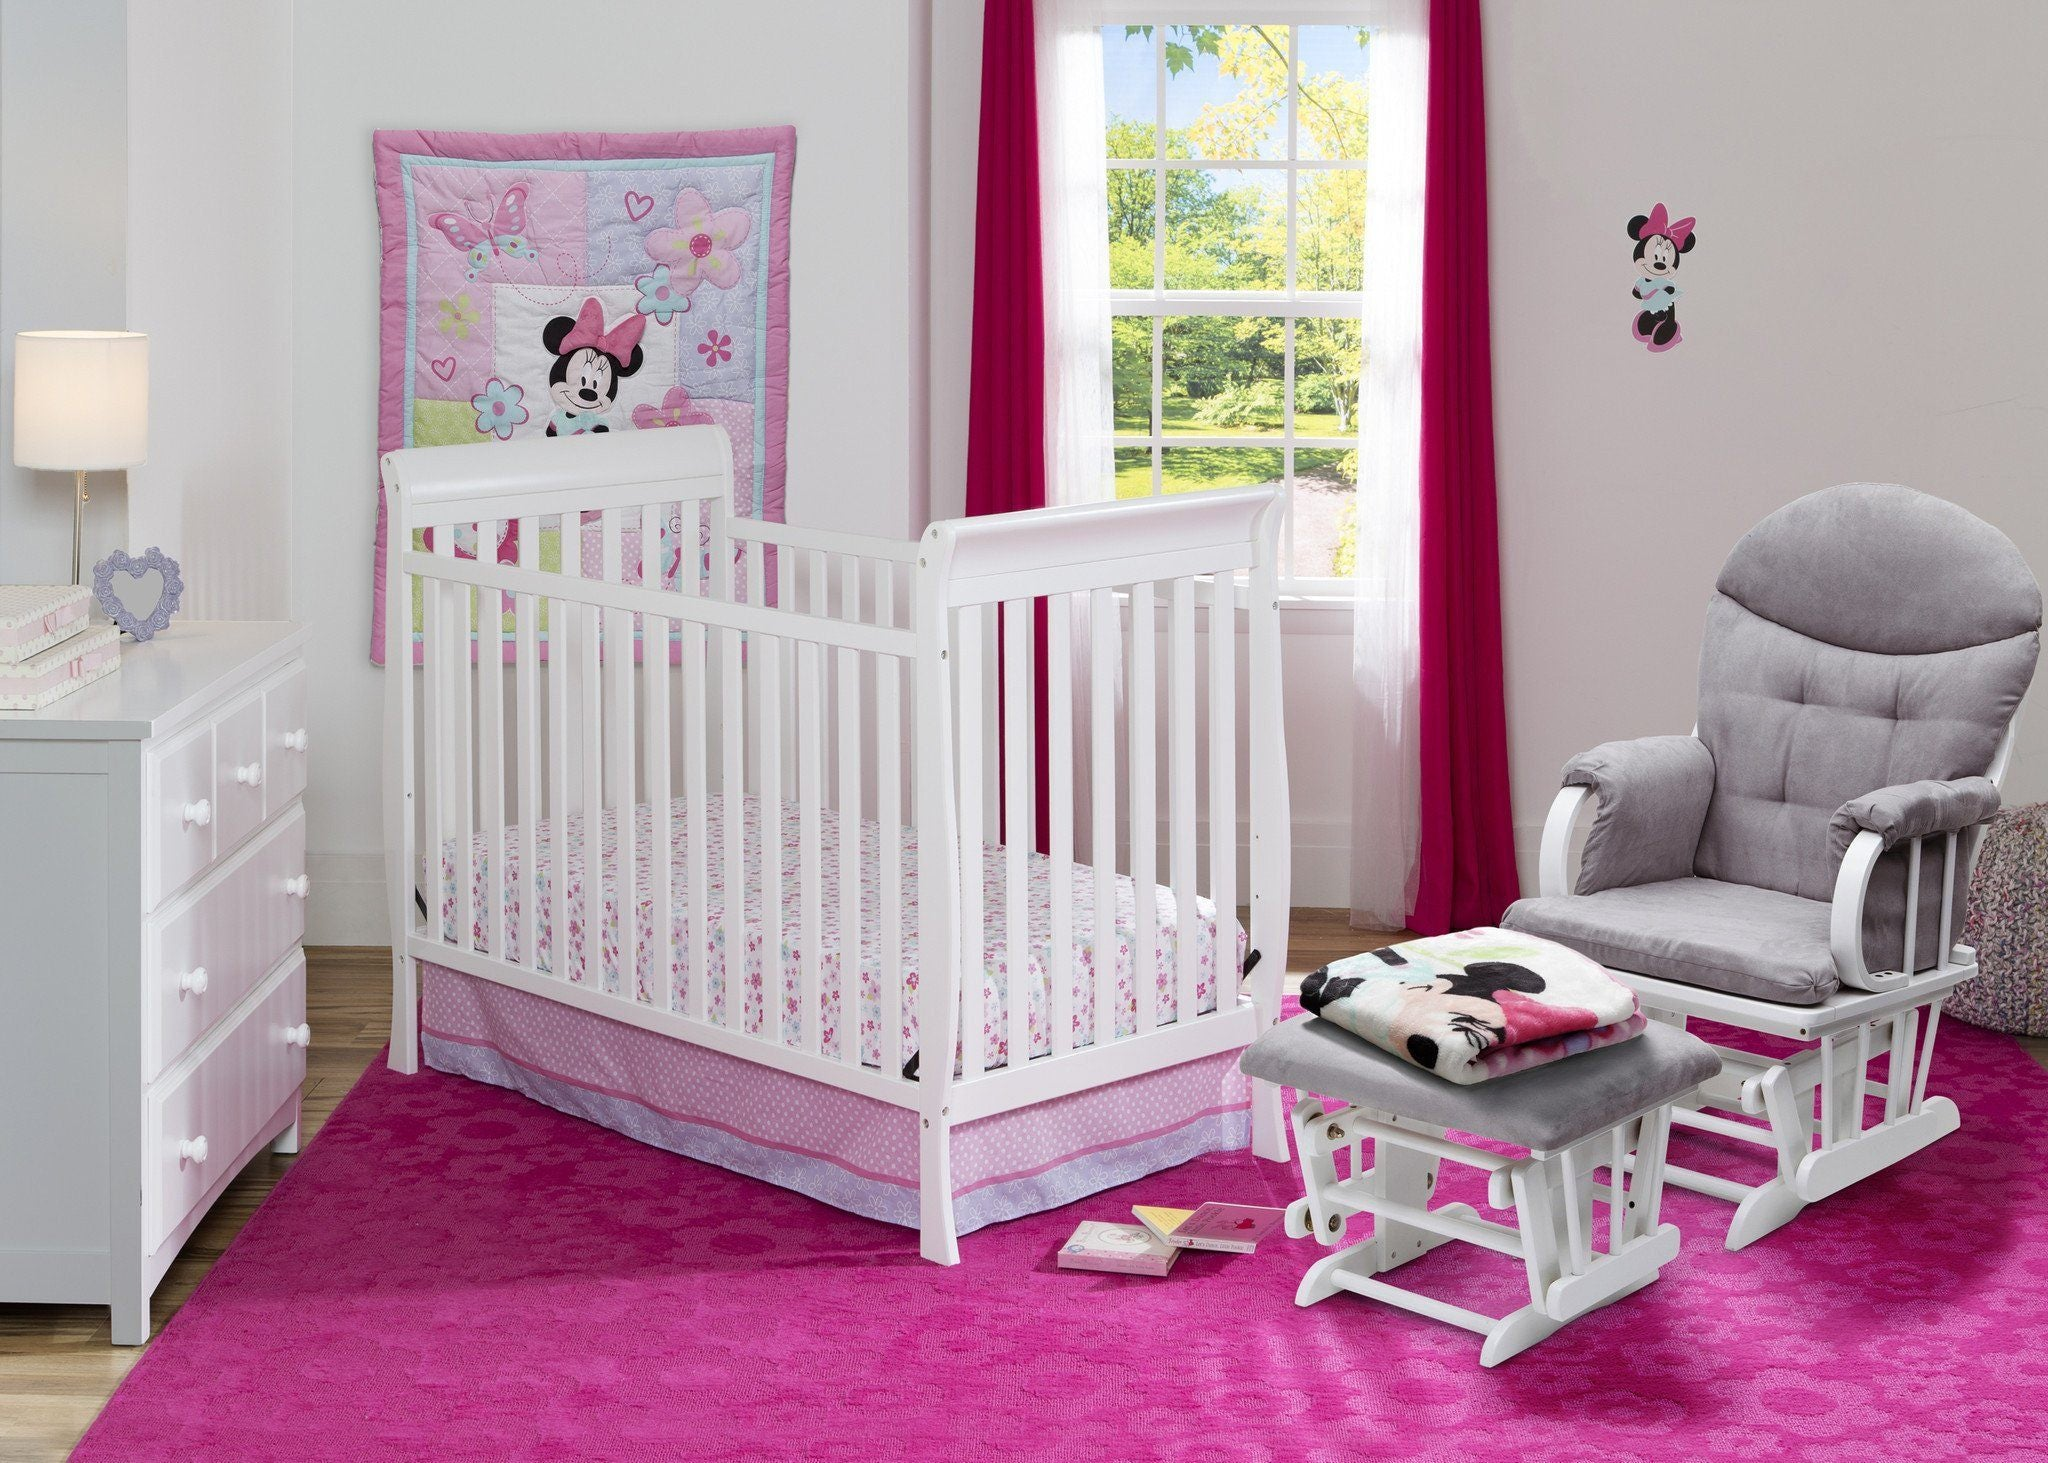 Delta Children White (100) Winter Park 3-in-1 Crib, Nursery View a1a